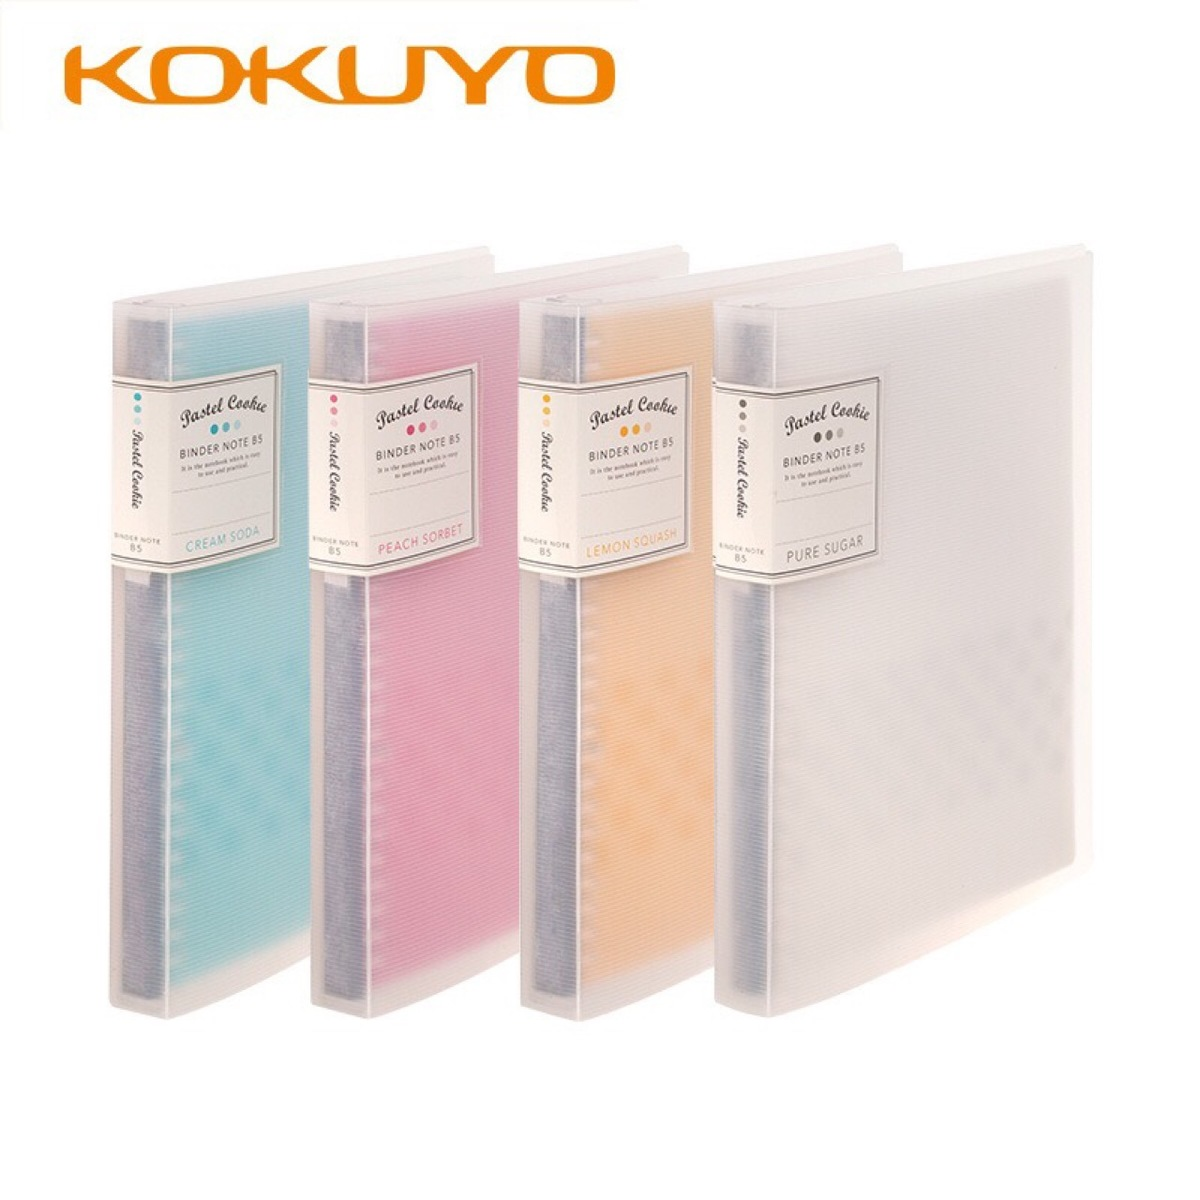 KOKUYO A5 B5 Removable Loose Leaf Notebook Refill Spiral Binder Planner Inner Page Inside Paper Dairy Weekly Monthly Plan Line binder inner page notebook loose leaf papery separator index paper separation divider page 5 sheets matching filofax kikkik